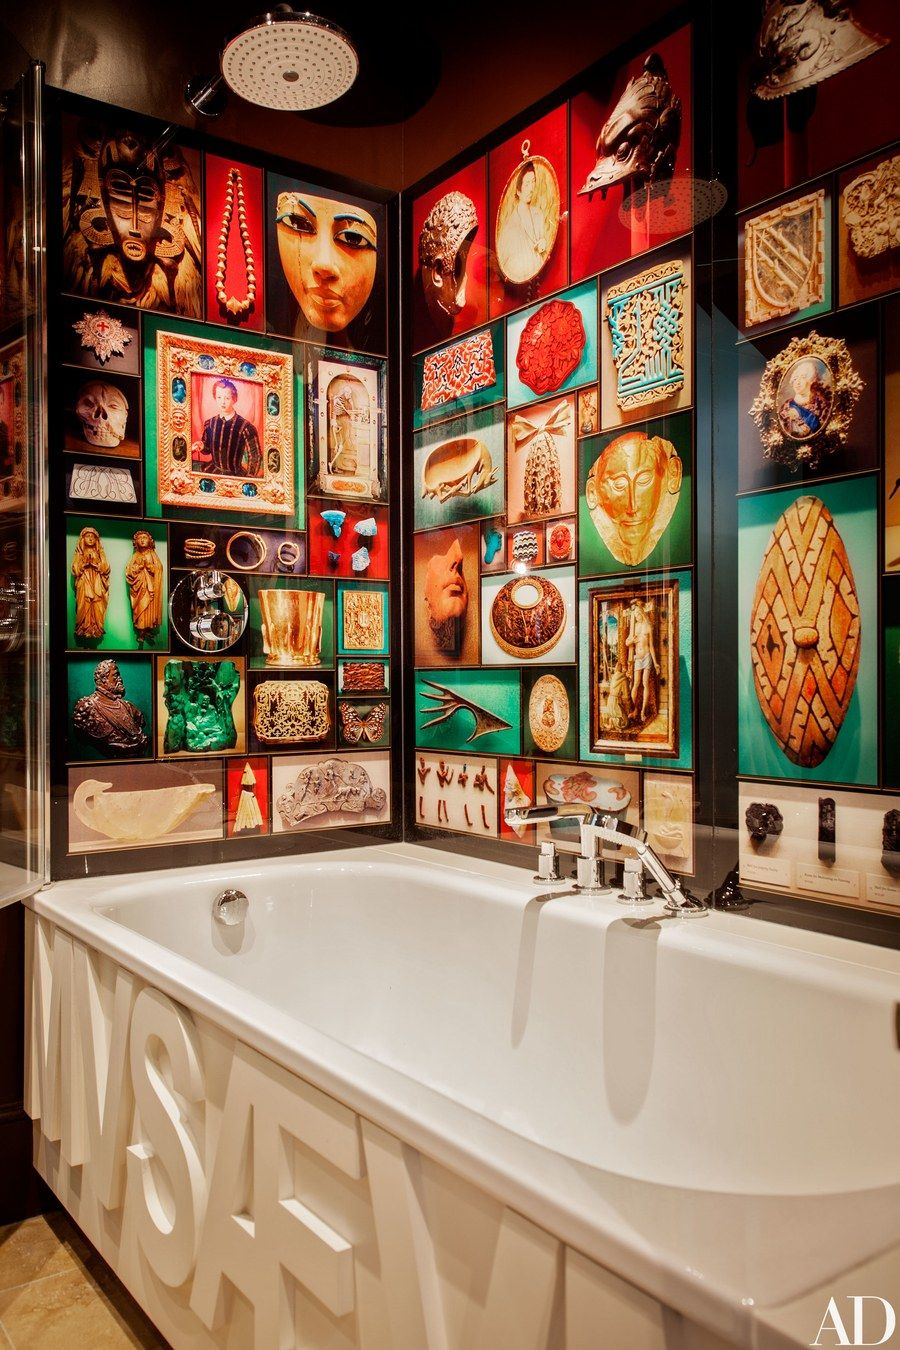 Ashley's snapshots of museum treasures turn the bath into a cabinet of curiosities. Bette tub; Hansgrohe fittings.